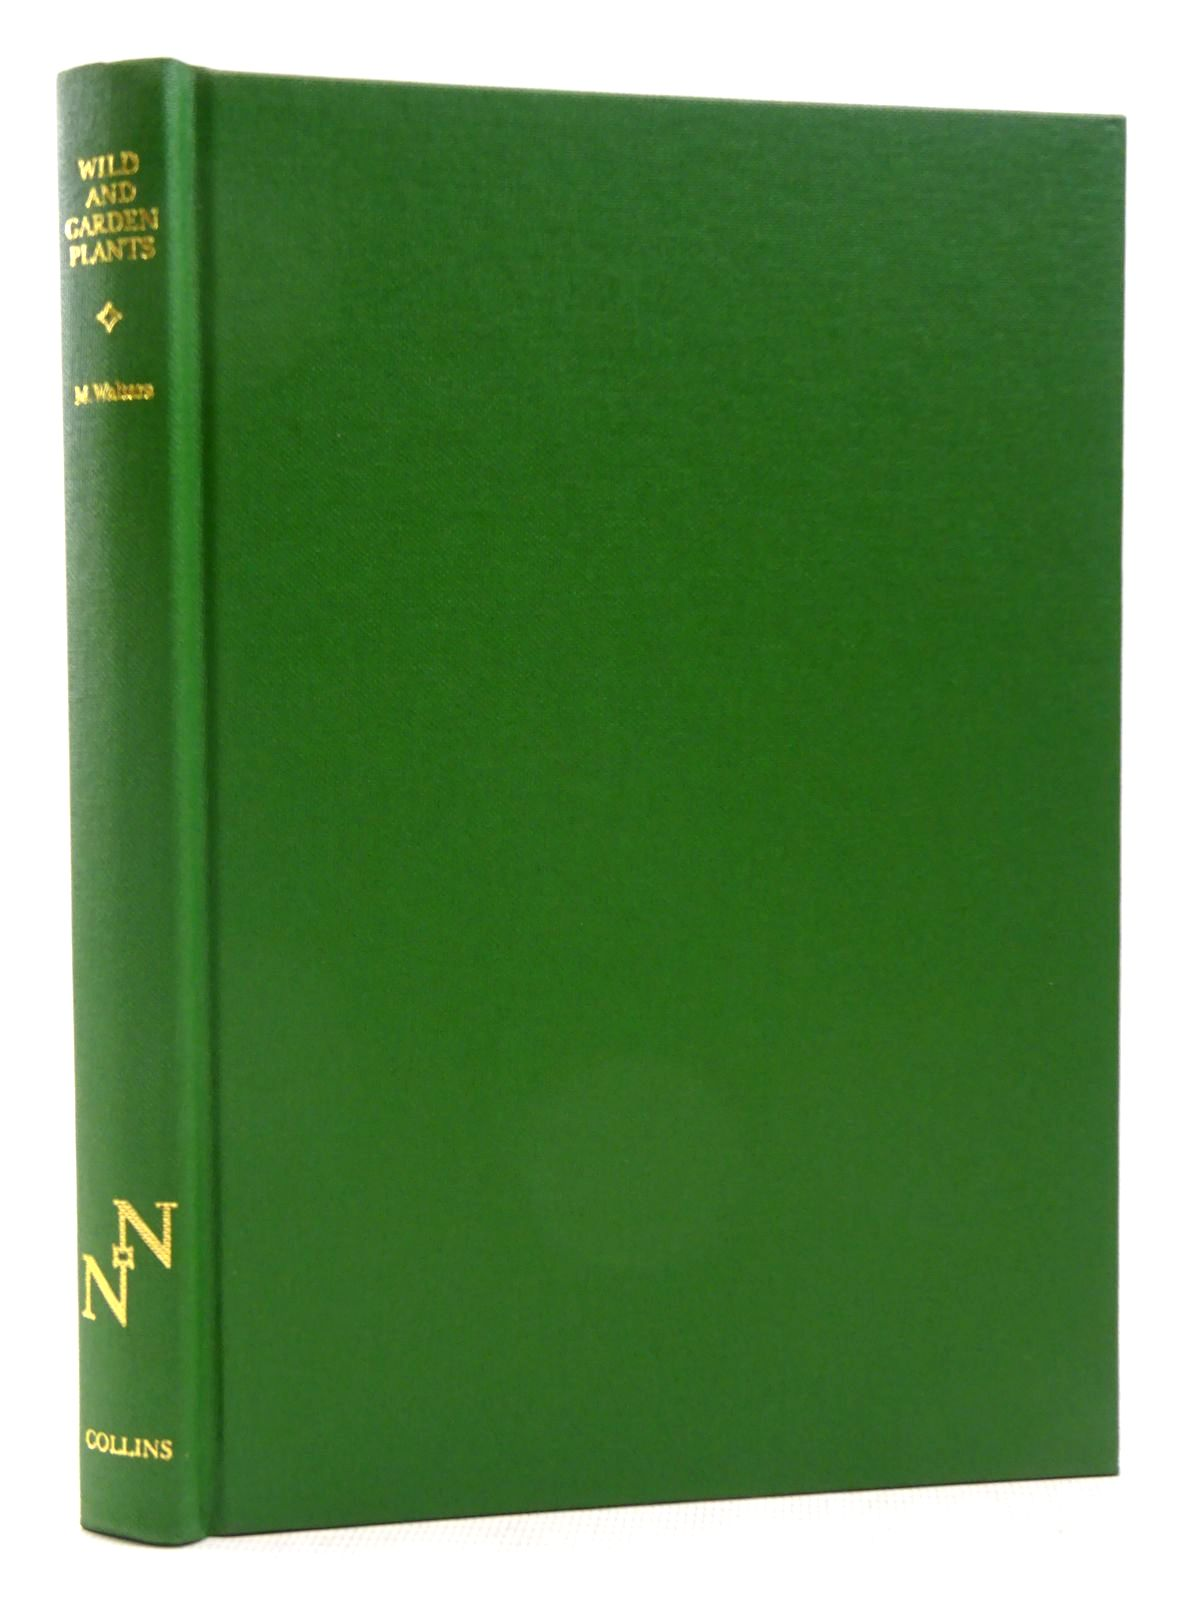 Photo of WILD & GARDEN PLANTS (NN 80) written by Walters, Max published by Collins (STOCK CODE: 2129337)  for sale by Stella & Rose's Books